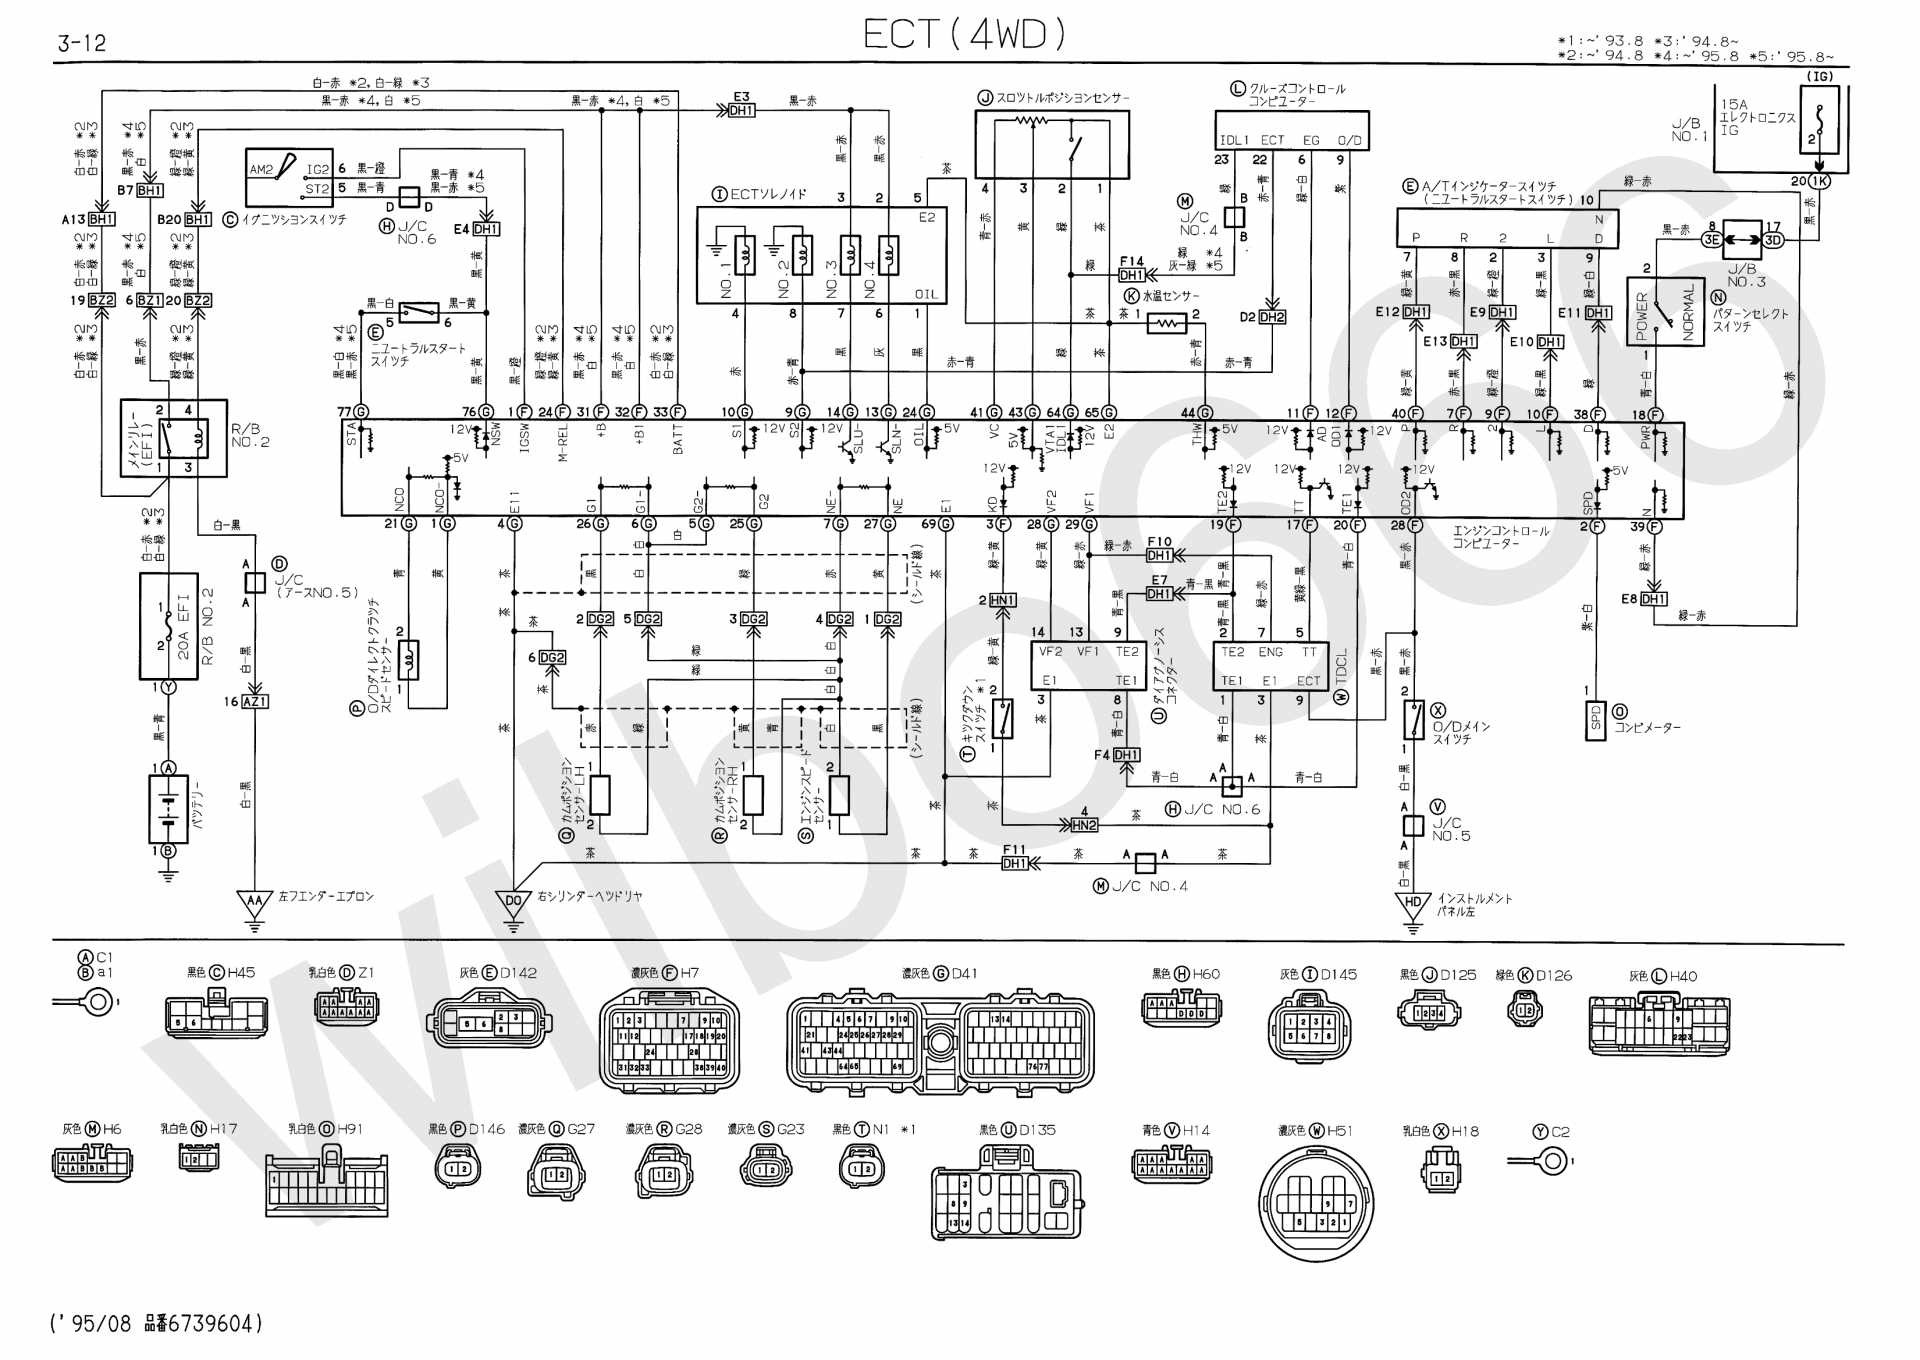 House Plans for Kids and Wiring Diagram Ka24e Maf Wiring Diagram Nice for